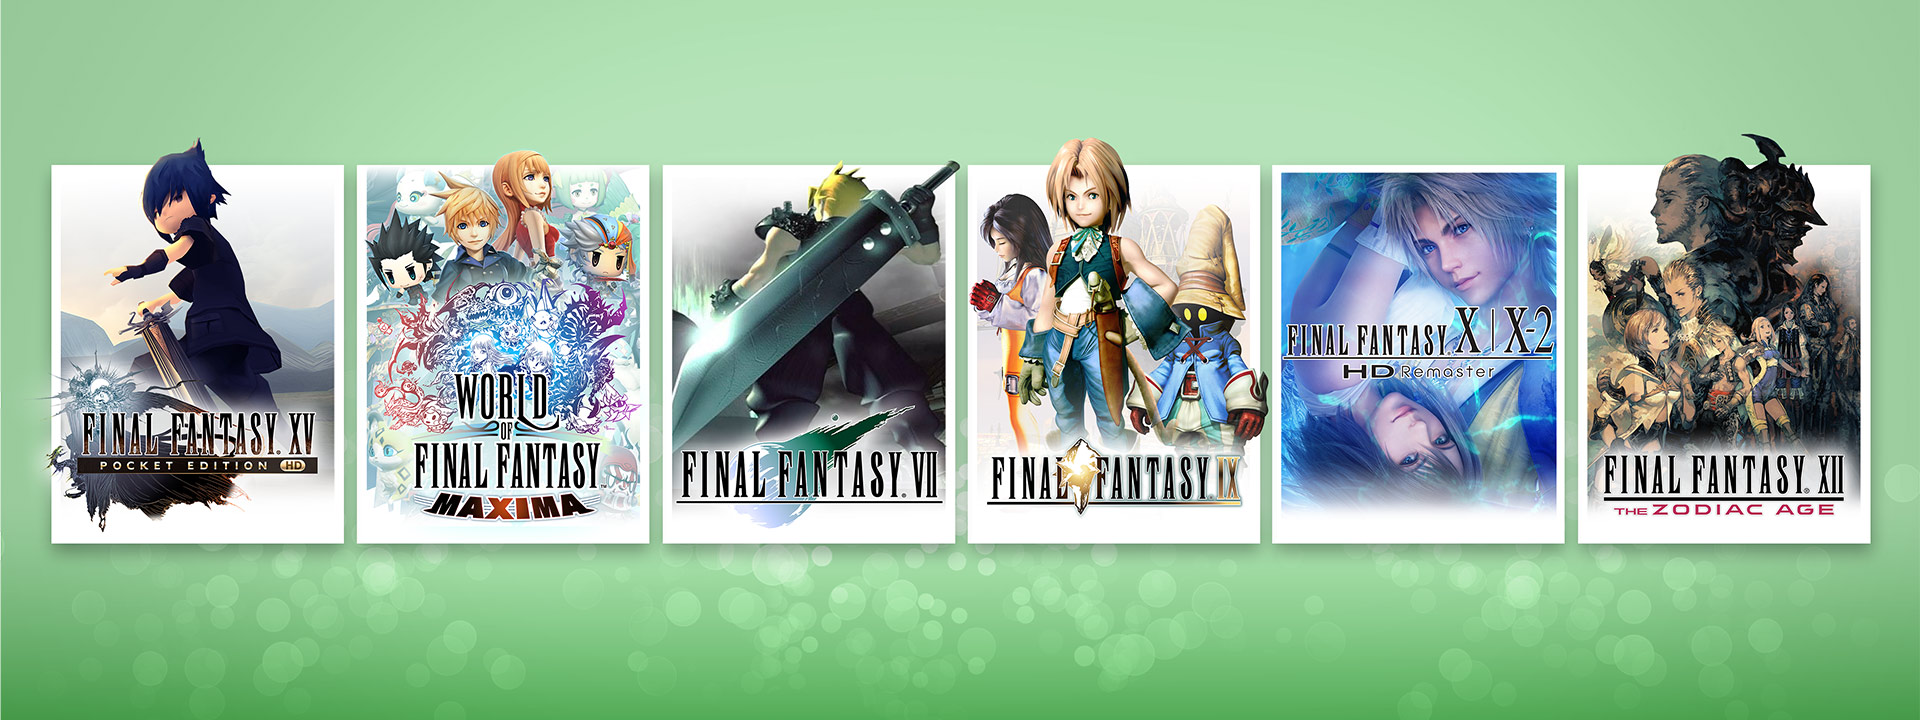 FINAL FANTASY XV POCKET EDITION HD、WORLD OF FINAL FANTASY MAXIMA、FINAL FANTASY VII、FINAL FANTASY IX、FINAL FANTASY X | X-2 HD Remaster 和 FINAL FANTASY XII THE ZODIAC AGE 的包裝盒圖案